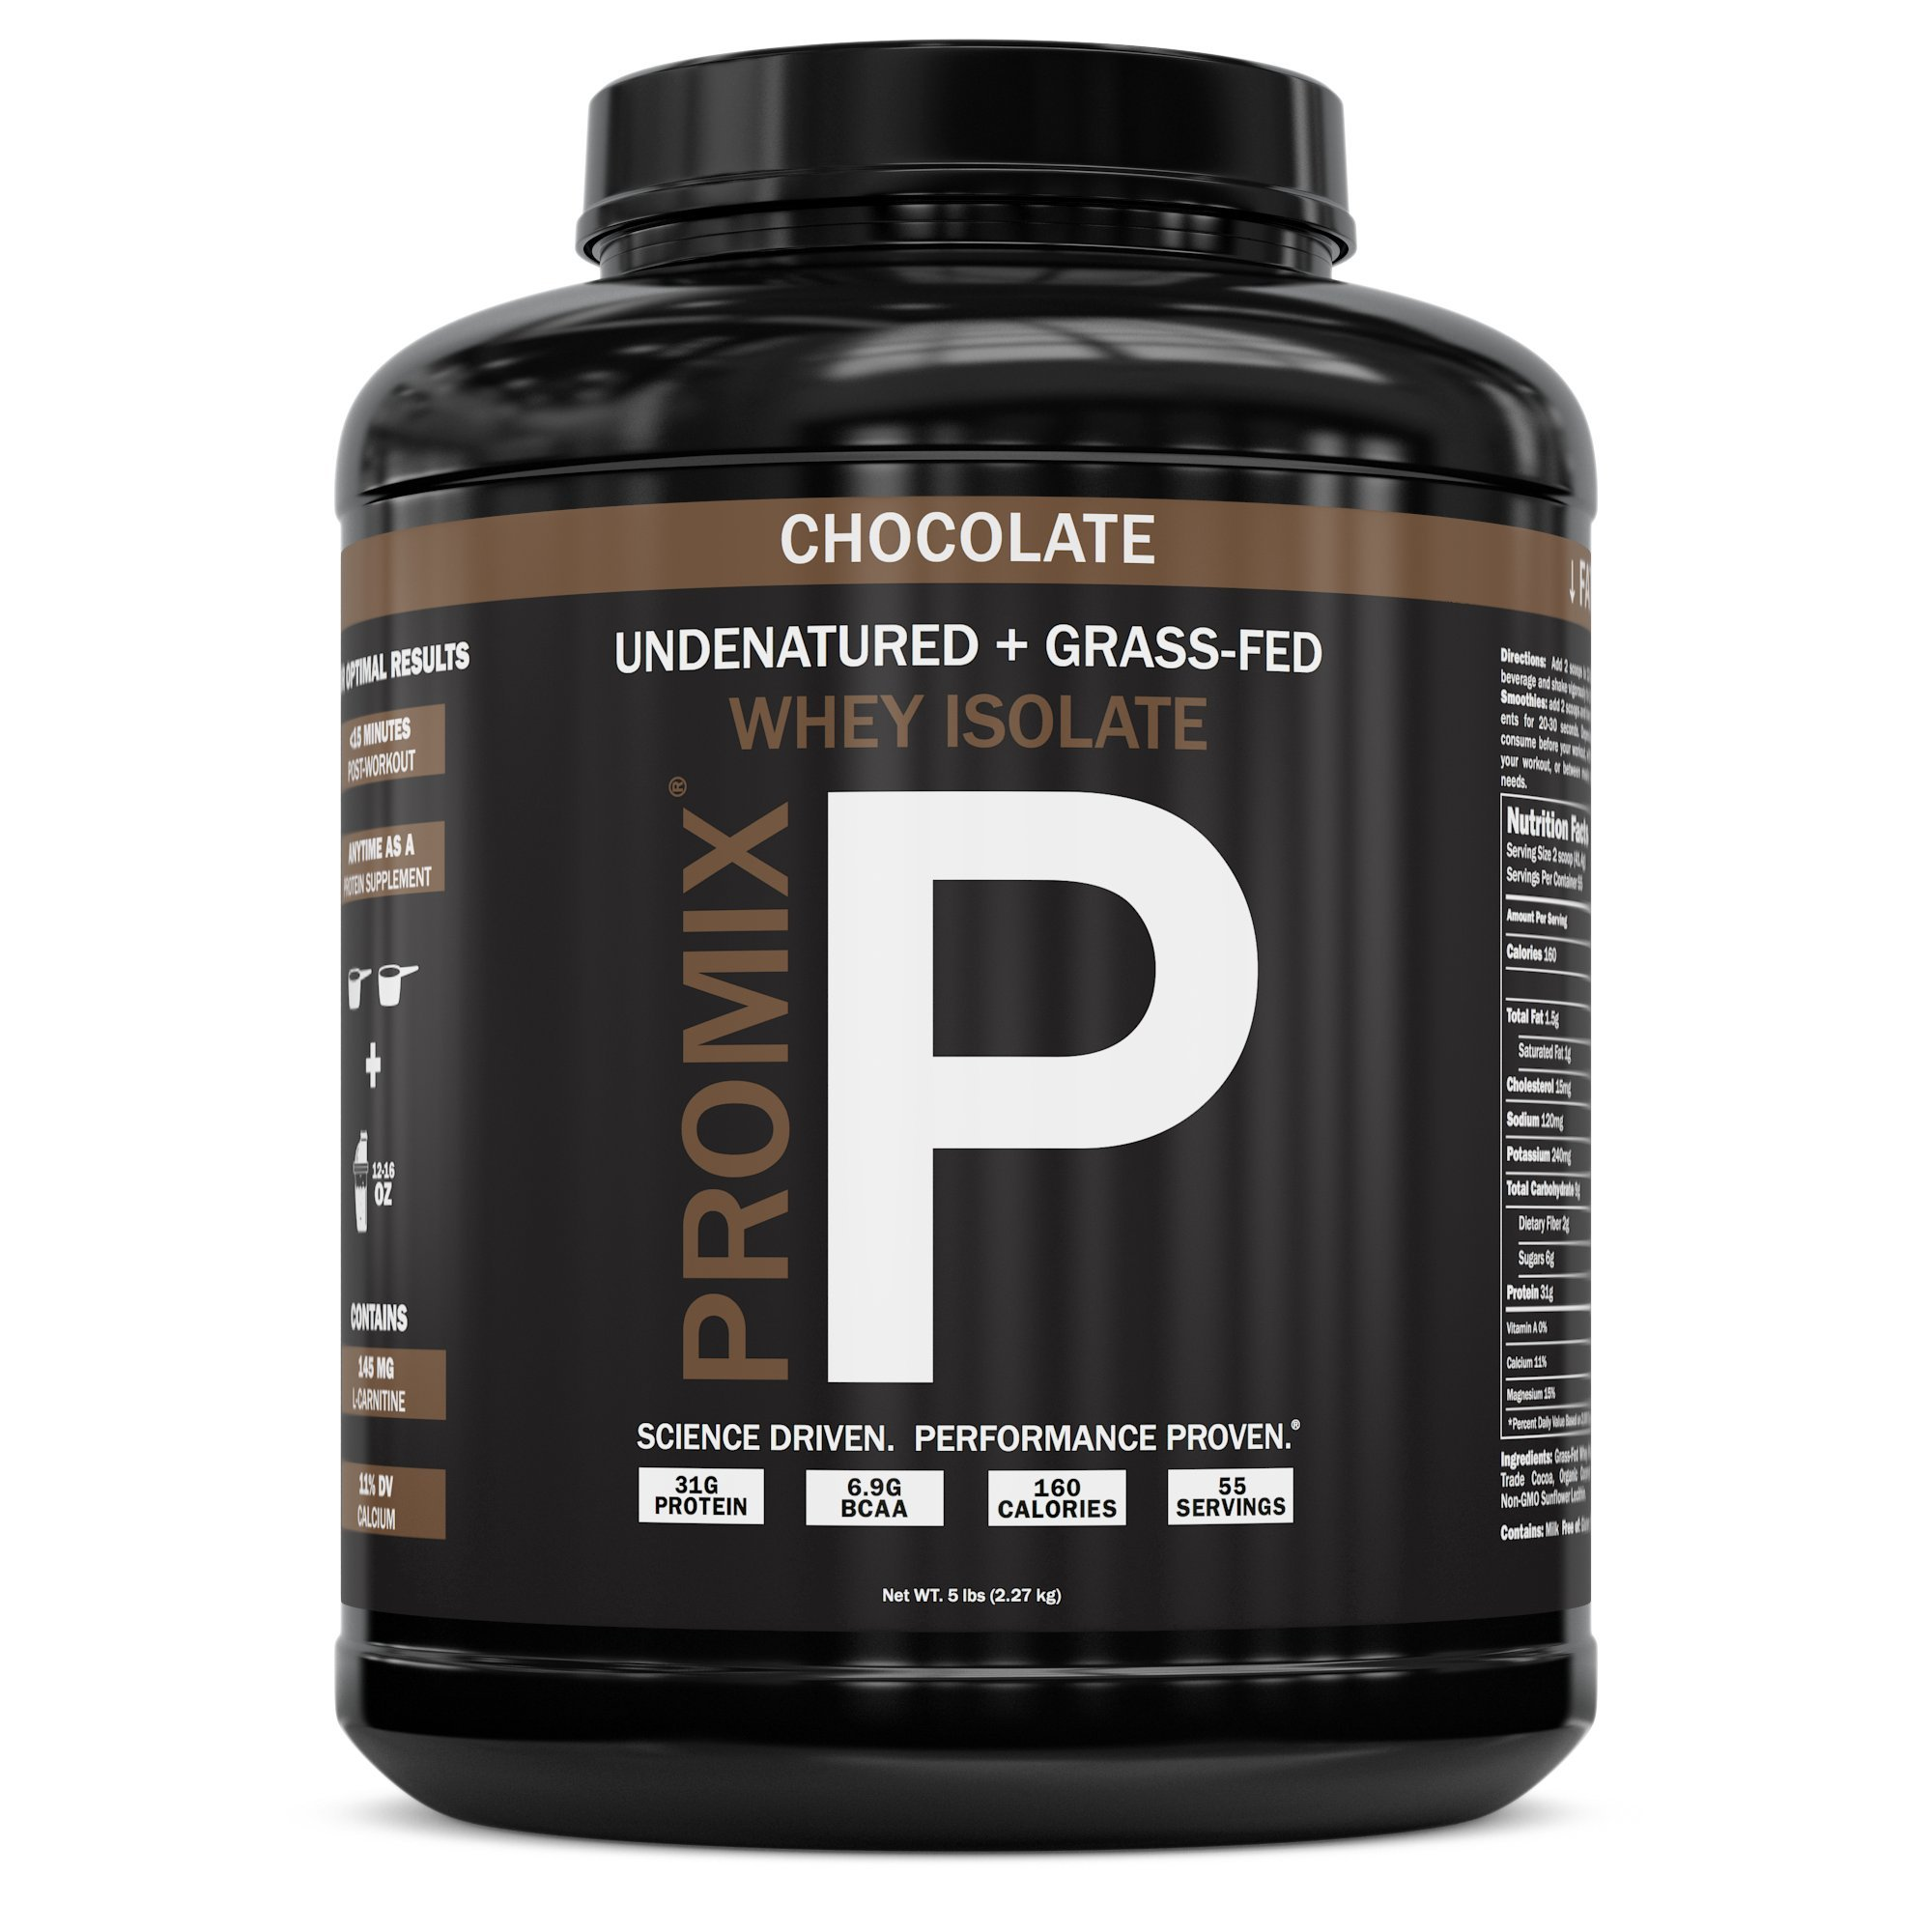 Native Grass Fed Whey Protein Isolate | 100% Optimum All Natural | Undenatured | Non-GMO + Gluten-Free + Soy-Free | Best for Fitness Nutrition Shakes | Energy Smoothie (Chocolate, 5LB) by ProMix Nutrition (Image #1)